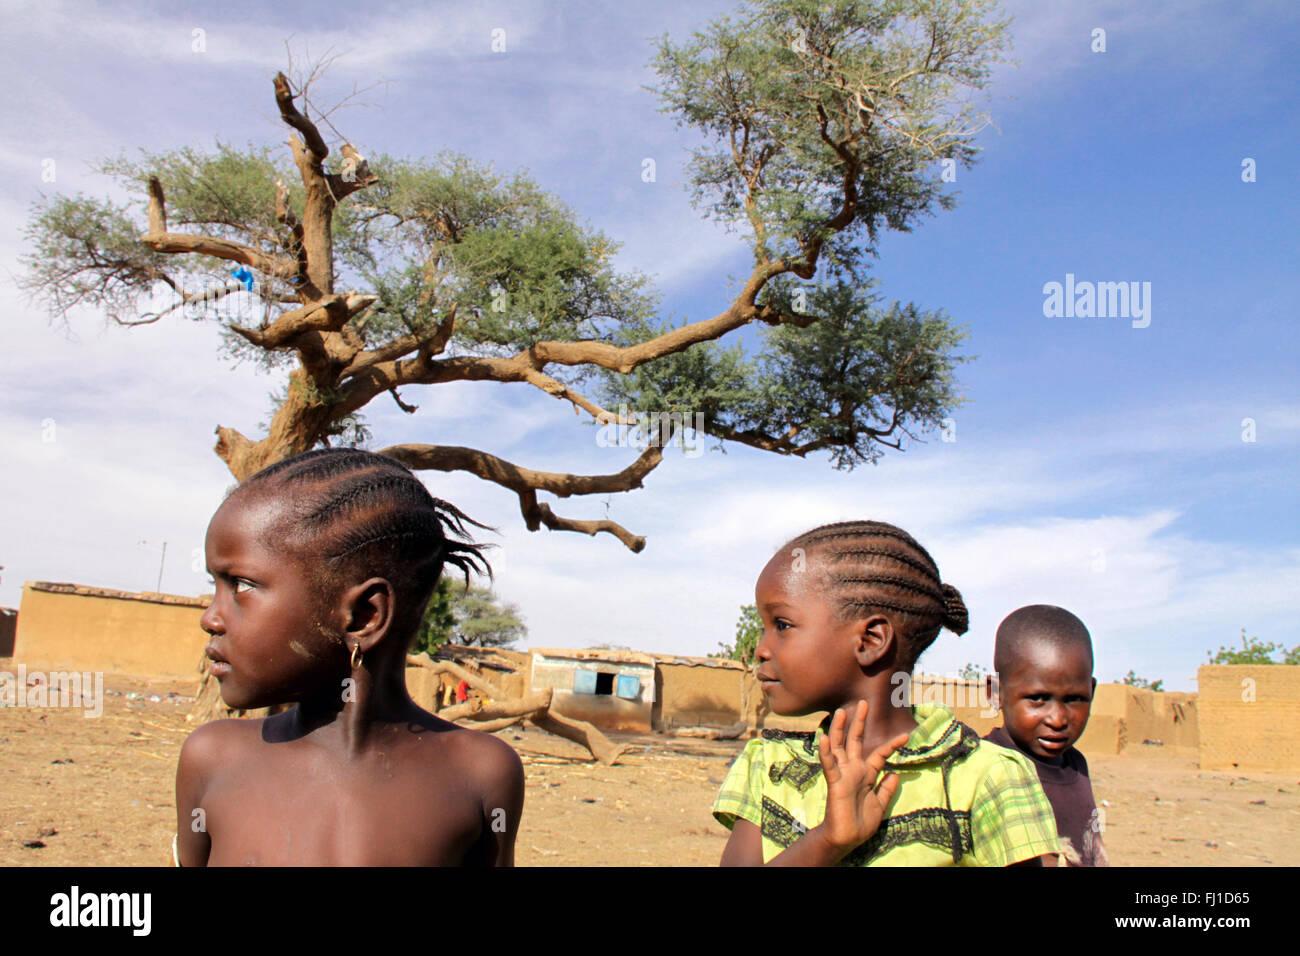 Portrait of girls with braids in Burkina Faso - Stock Image